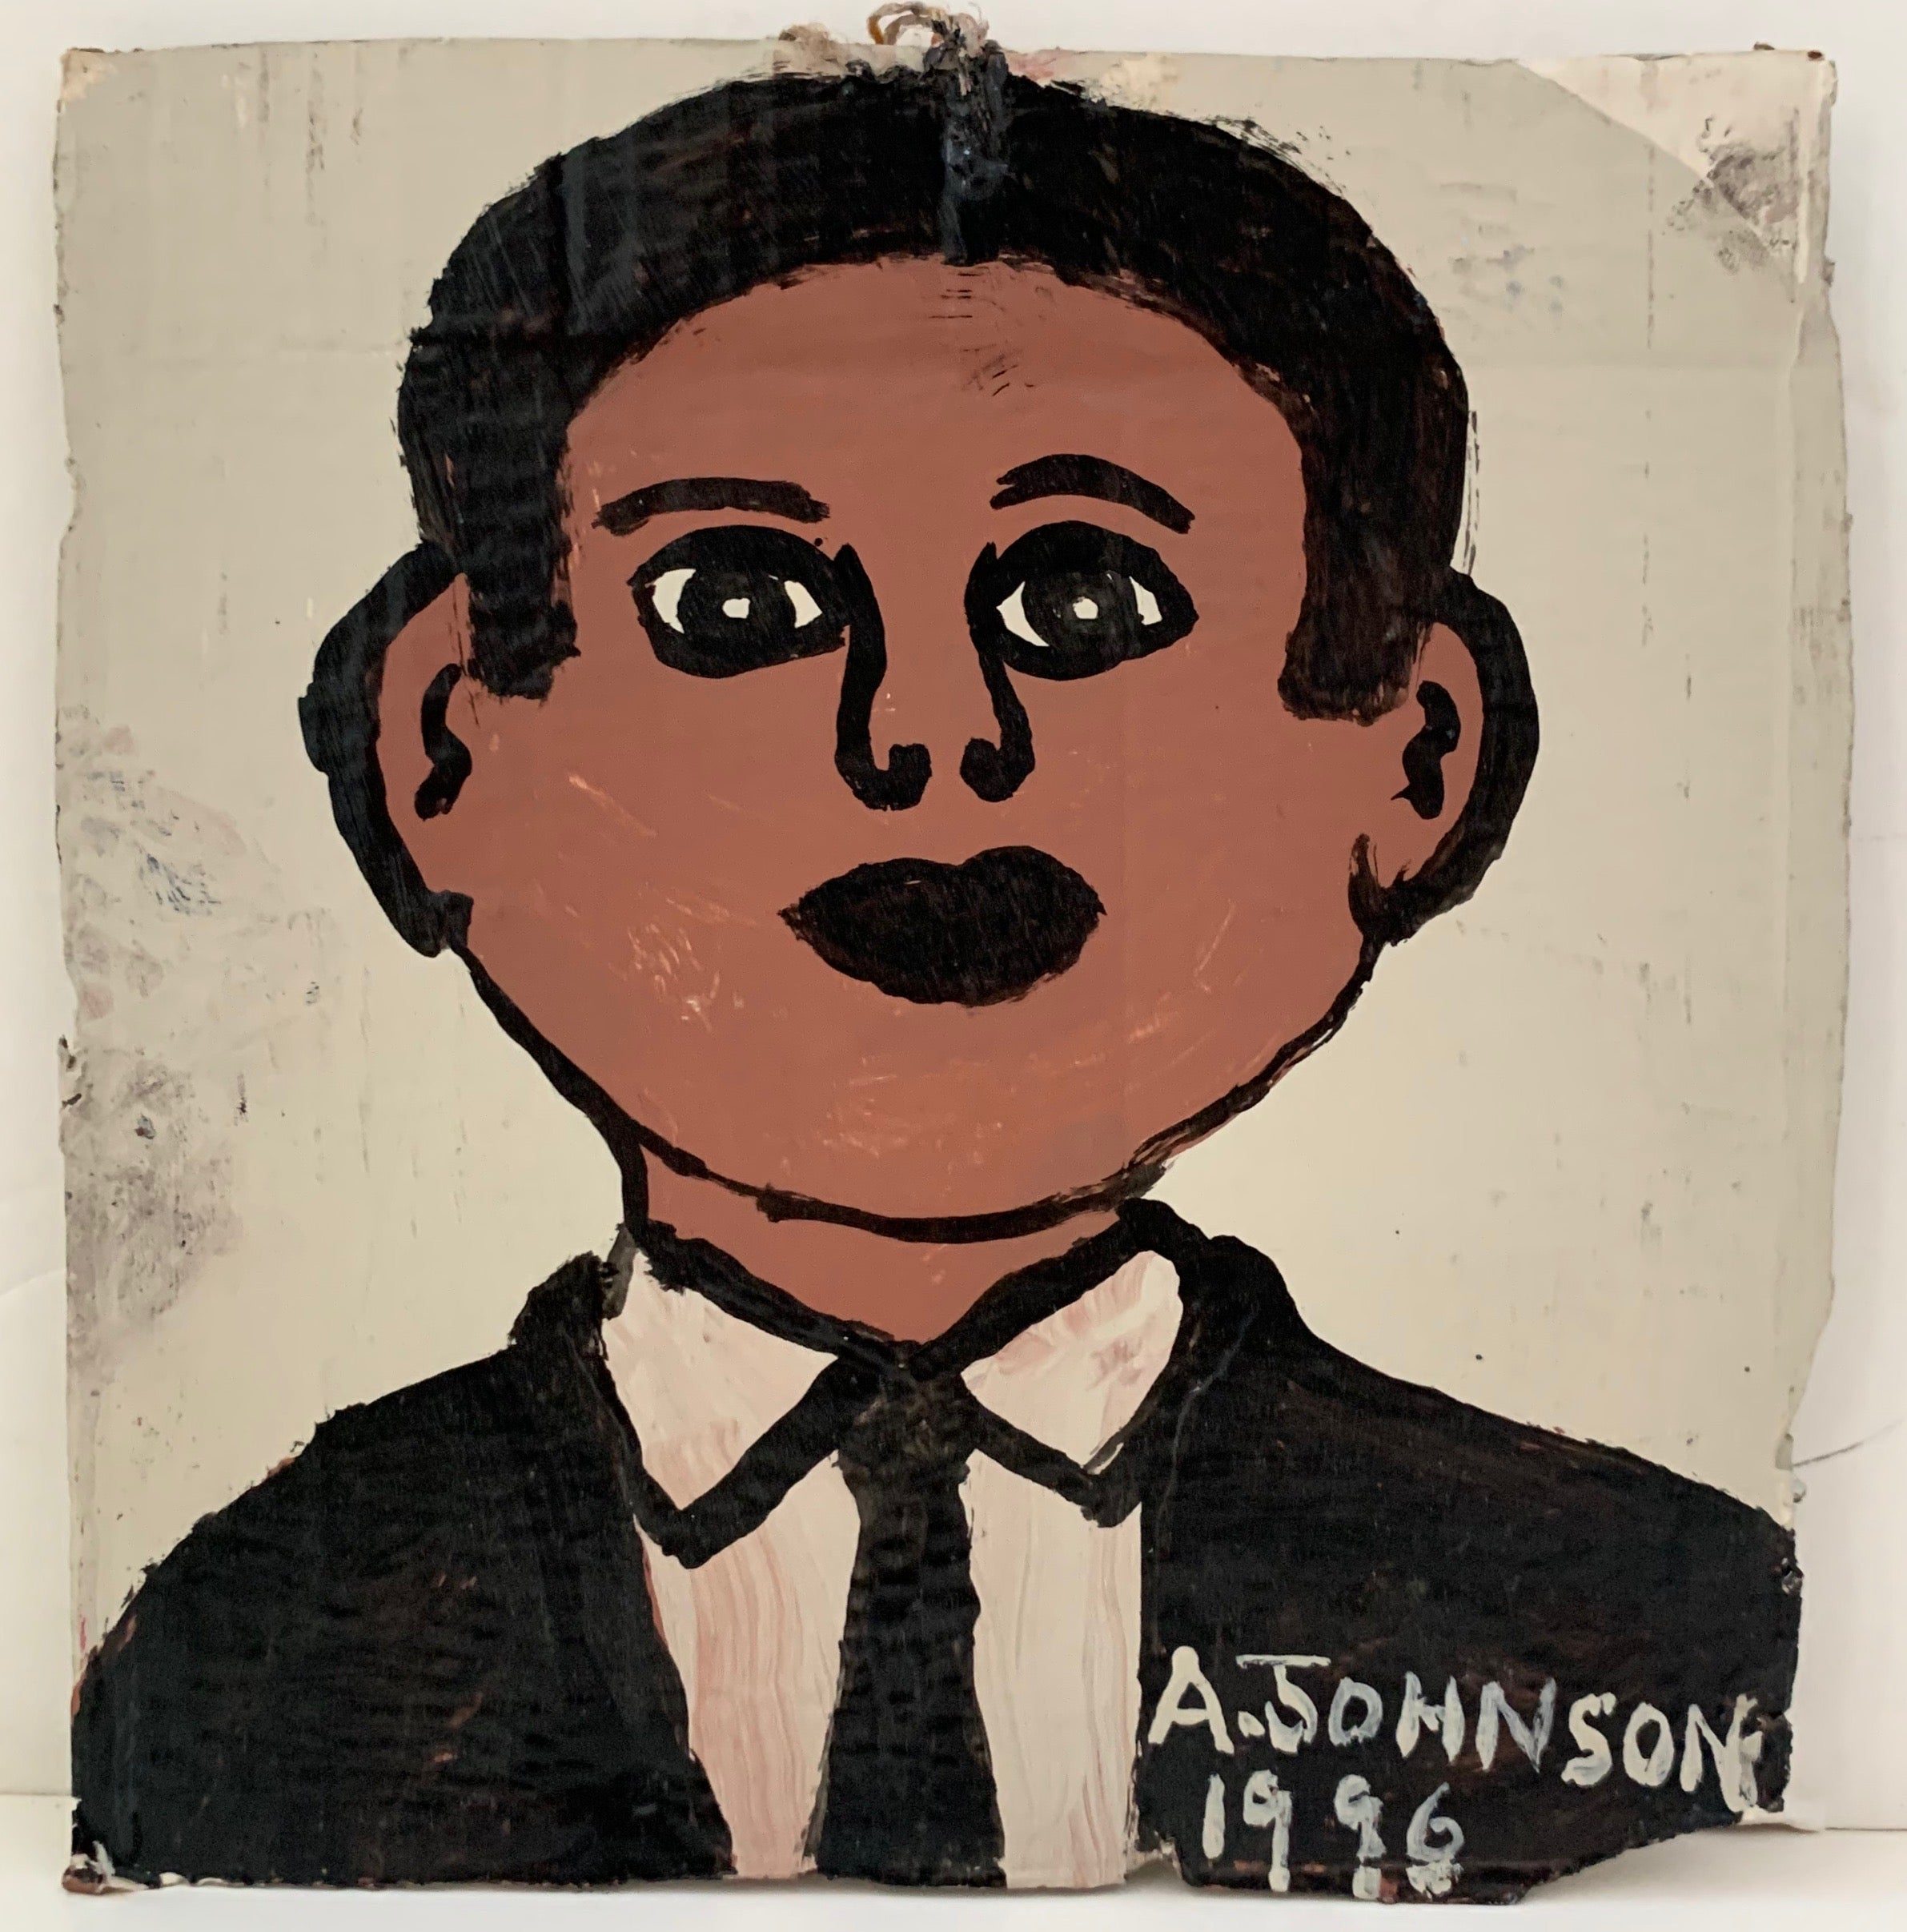 Man in Suit Anderson Johnson Painting